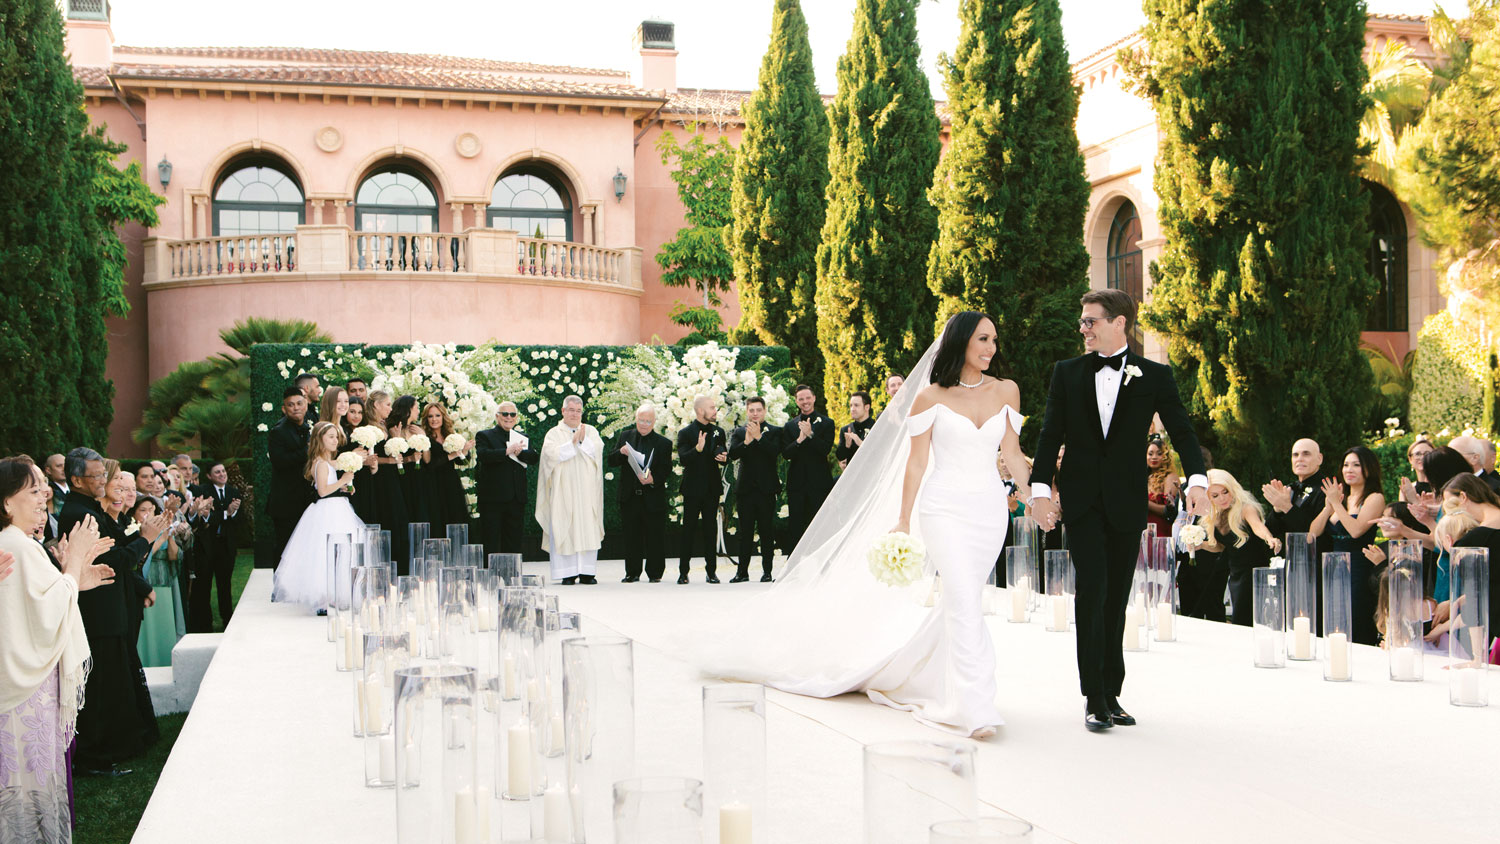 luxury real wedding celebrity cheryl burke matthew lawrence outdoor ceremony mindy weiss